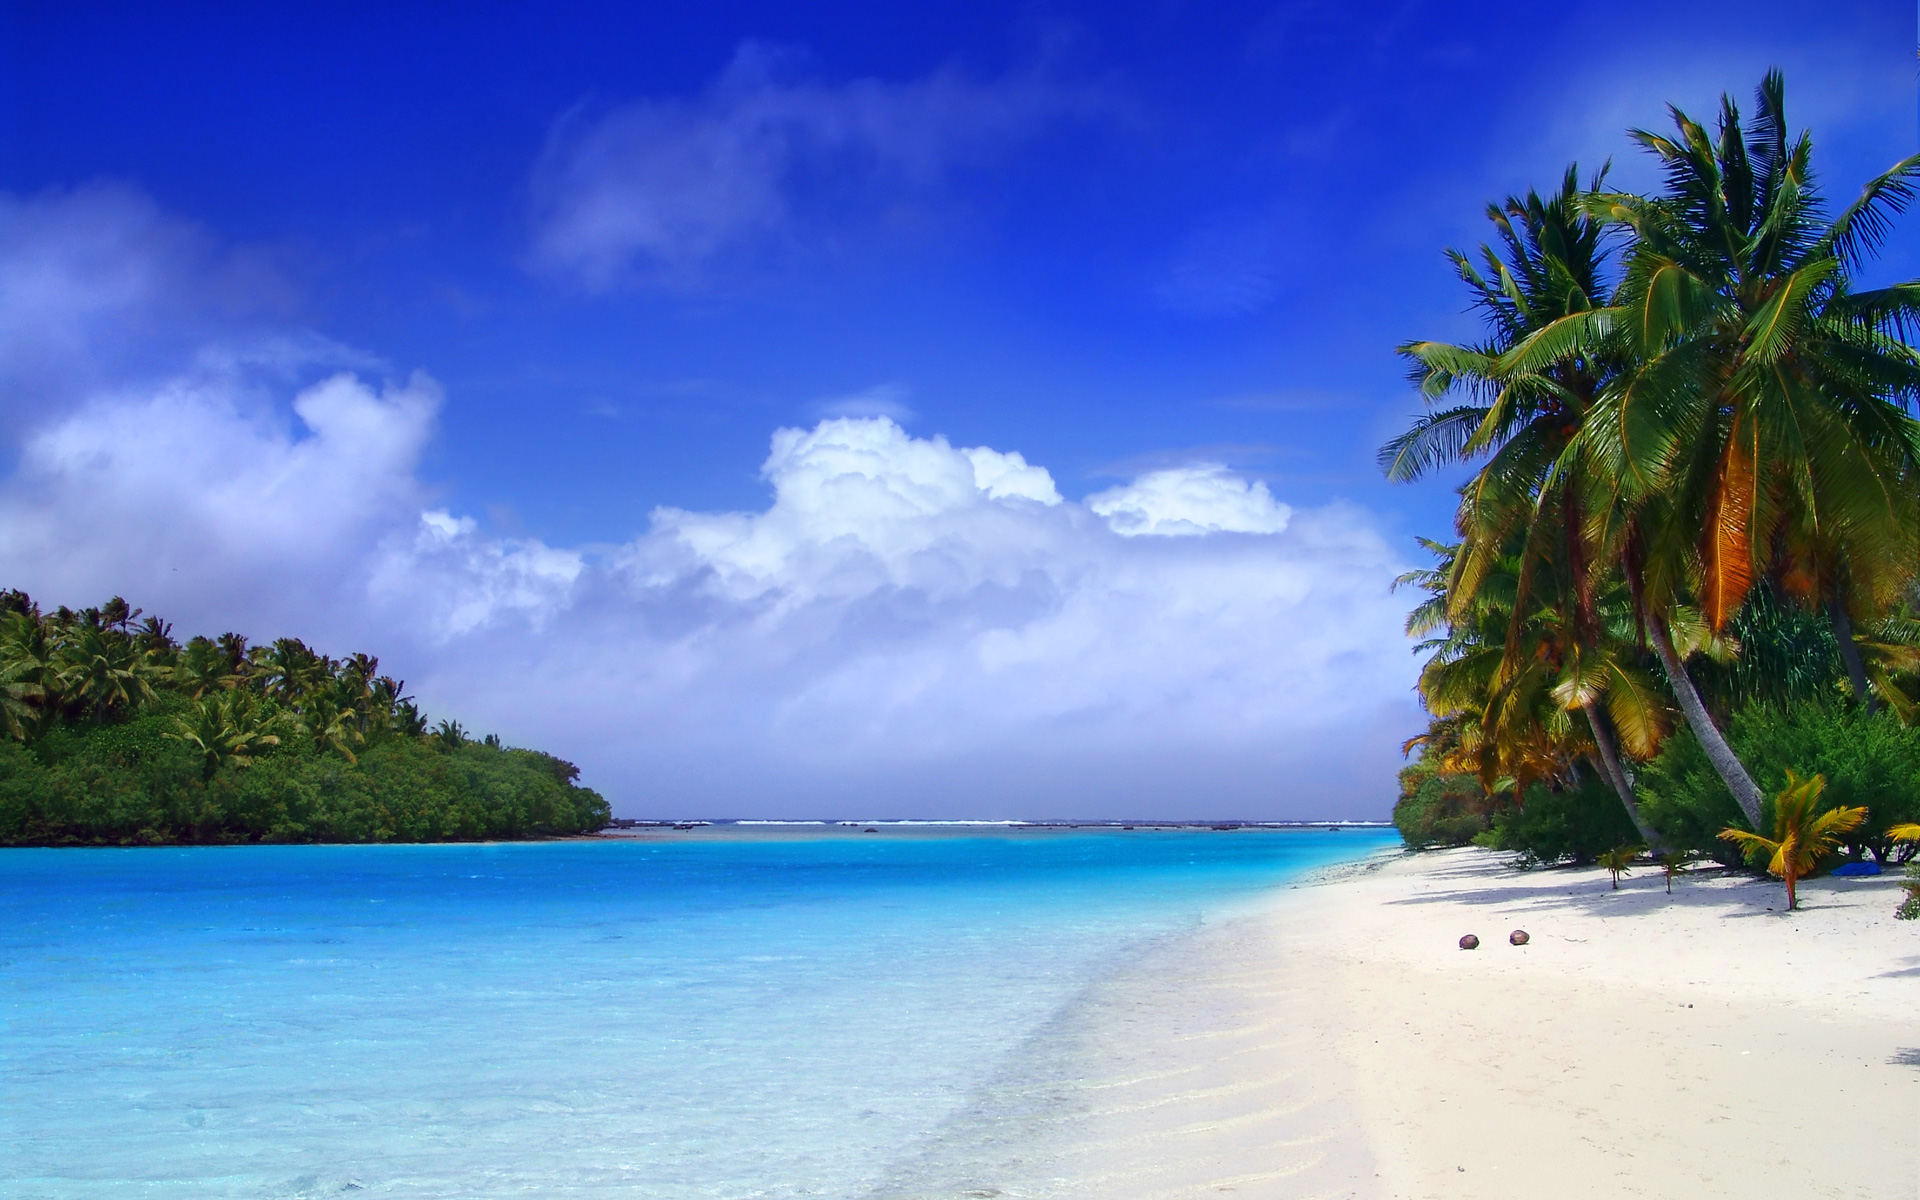 Paradise beach | 4K wallpapers, free and easy to download